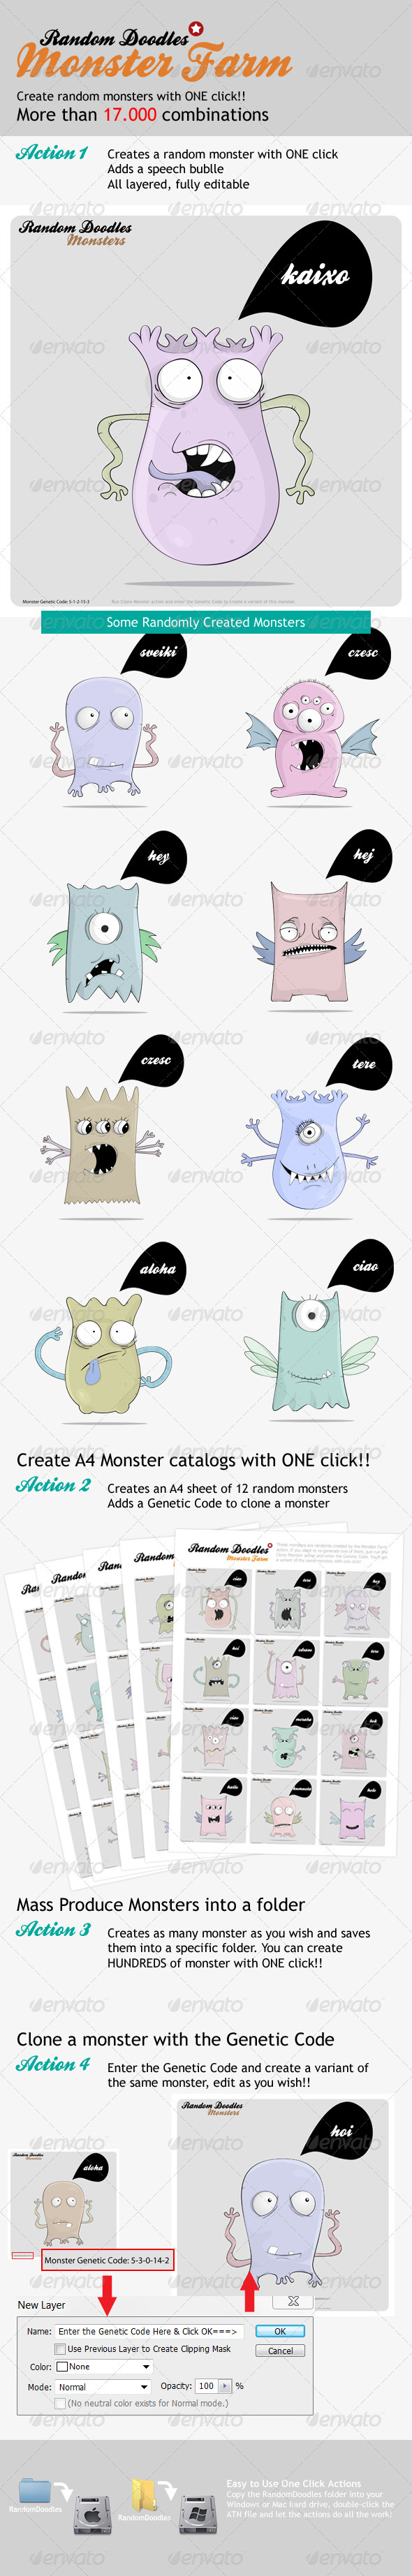 GraphicRiver MonsterFarm Random Doodle Generator 1925315